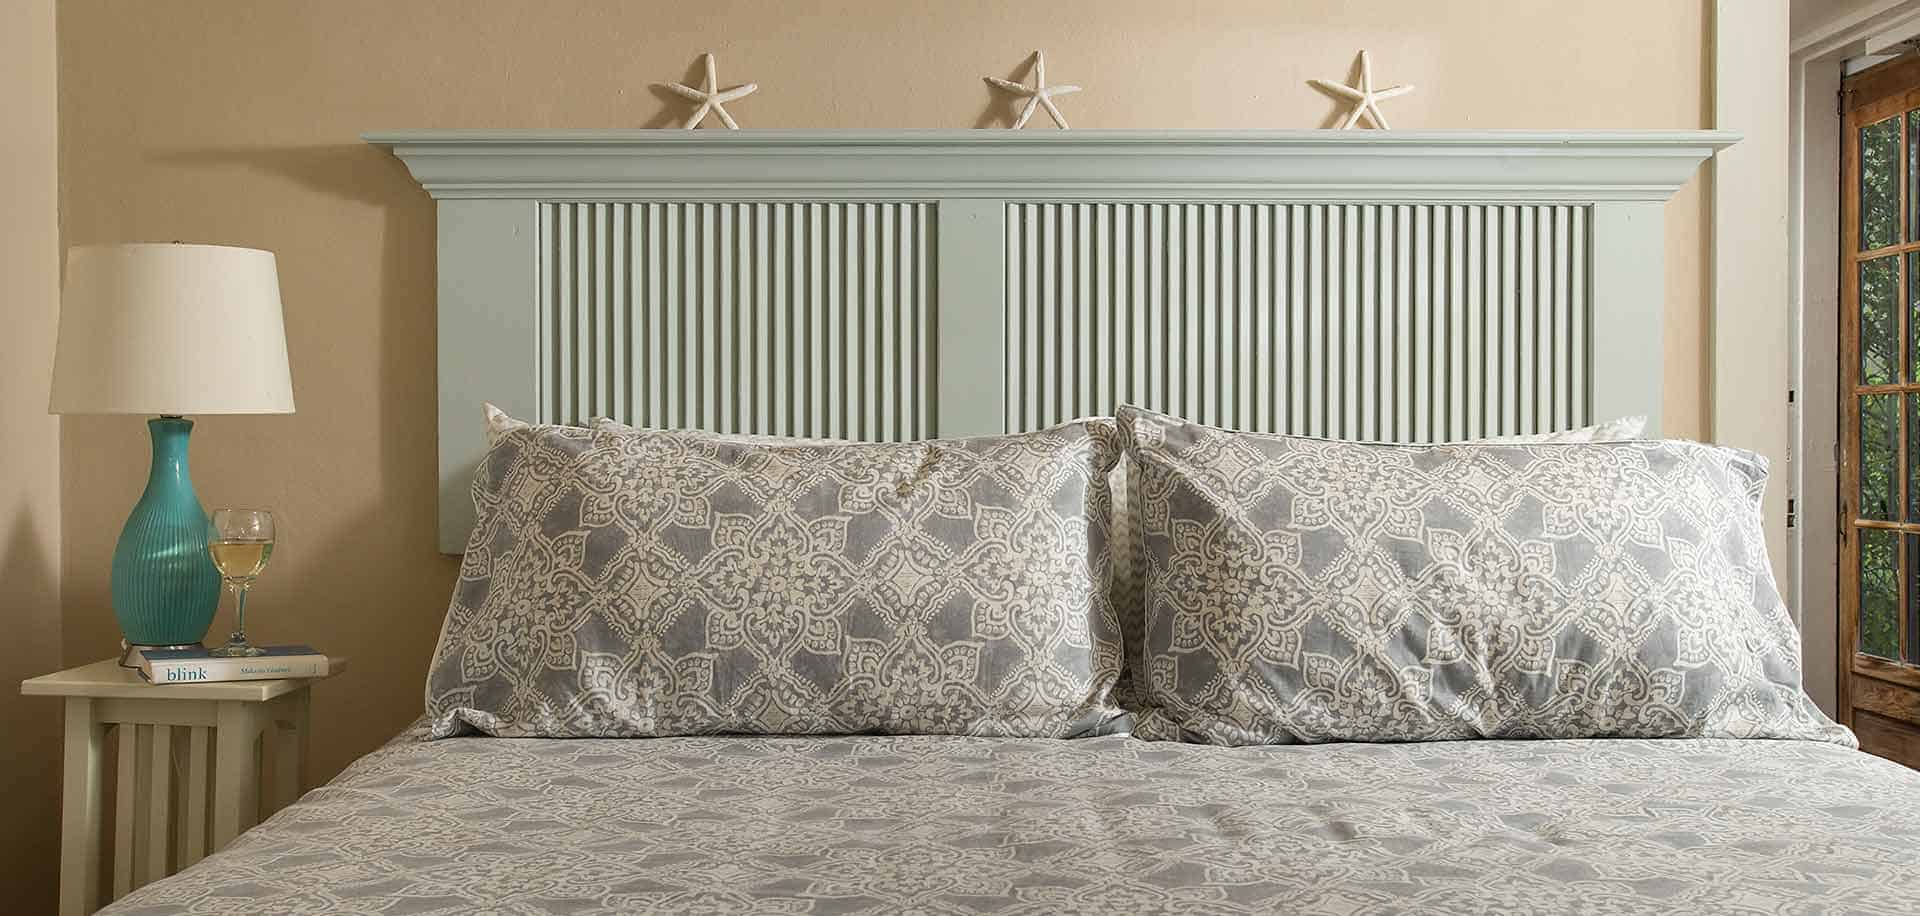 King room bed with starfish decor and headboard